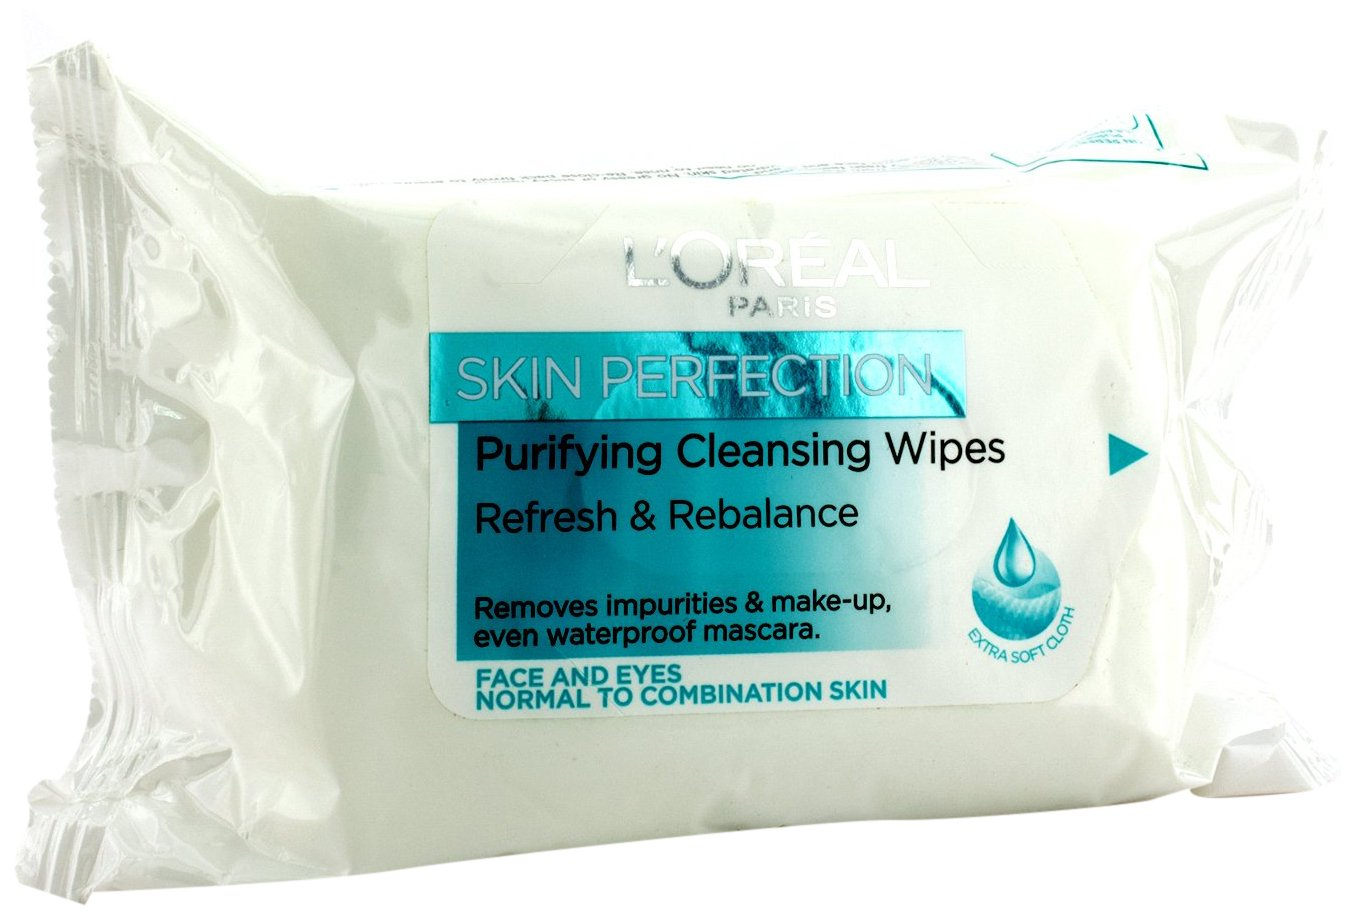 L'Oreal Paris Skin Perfection Purifying Cleansing Wipes L' Oreal 3600522783329